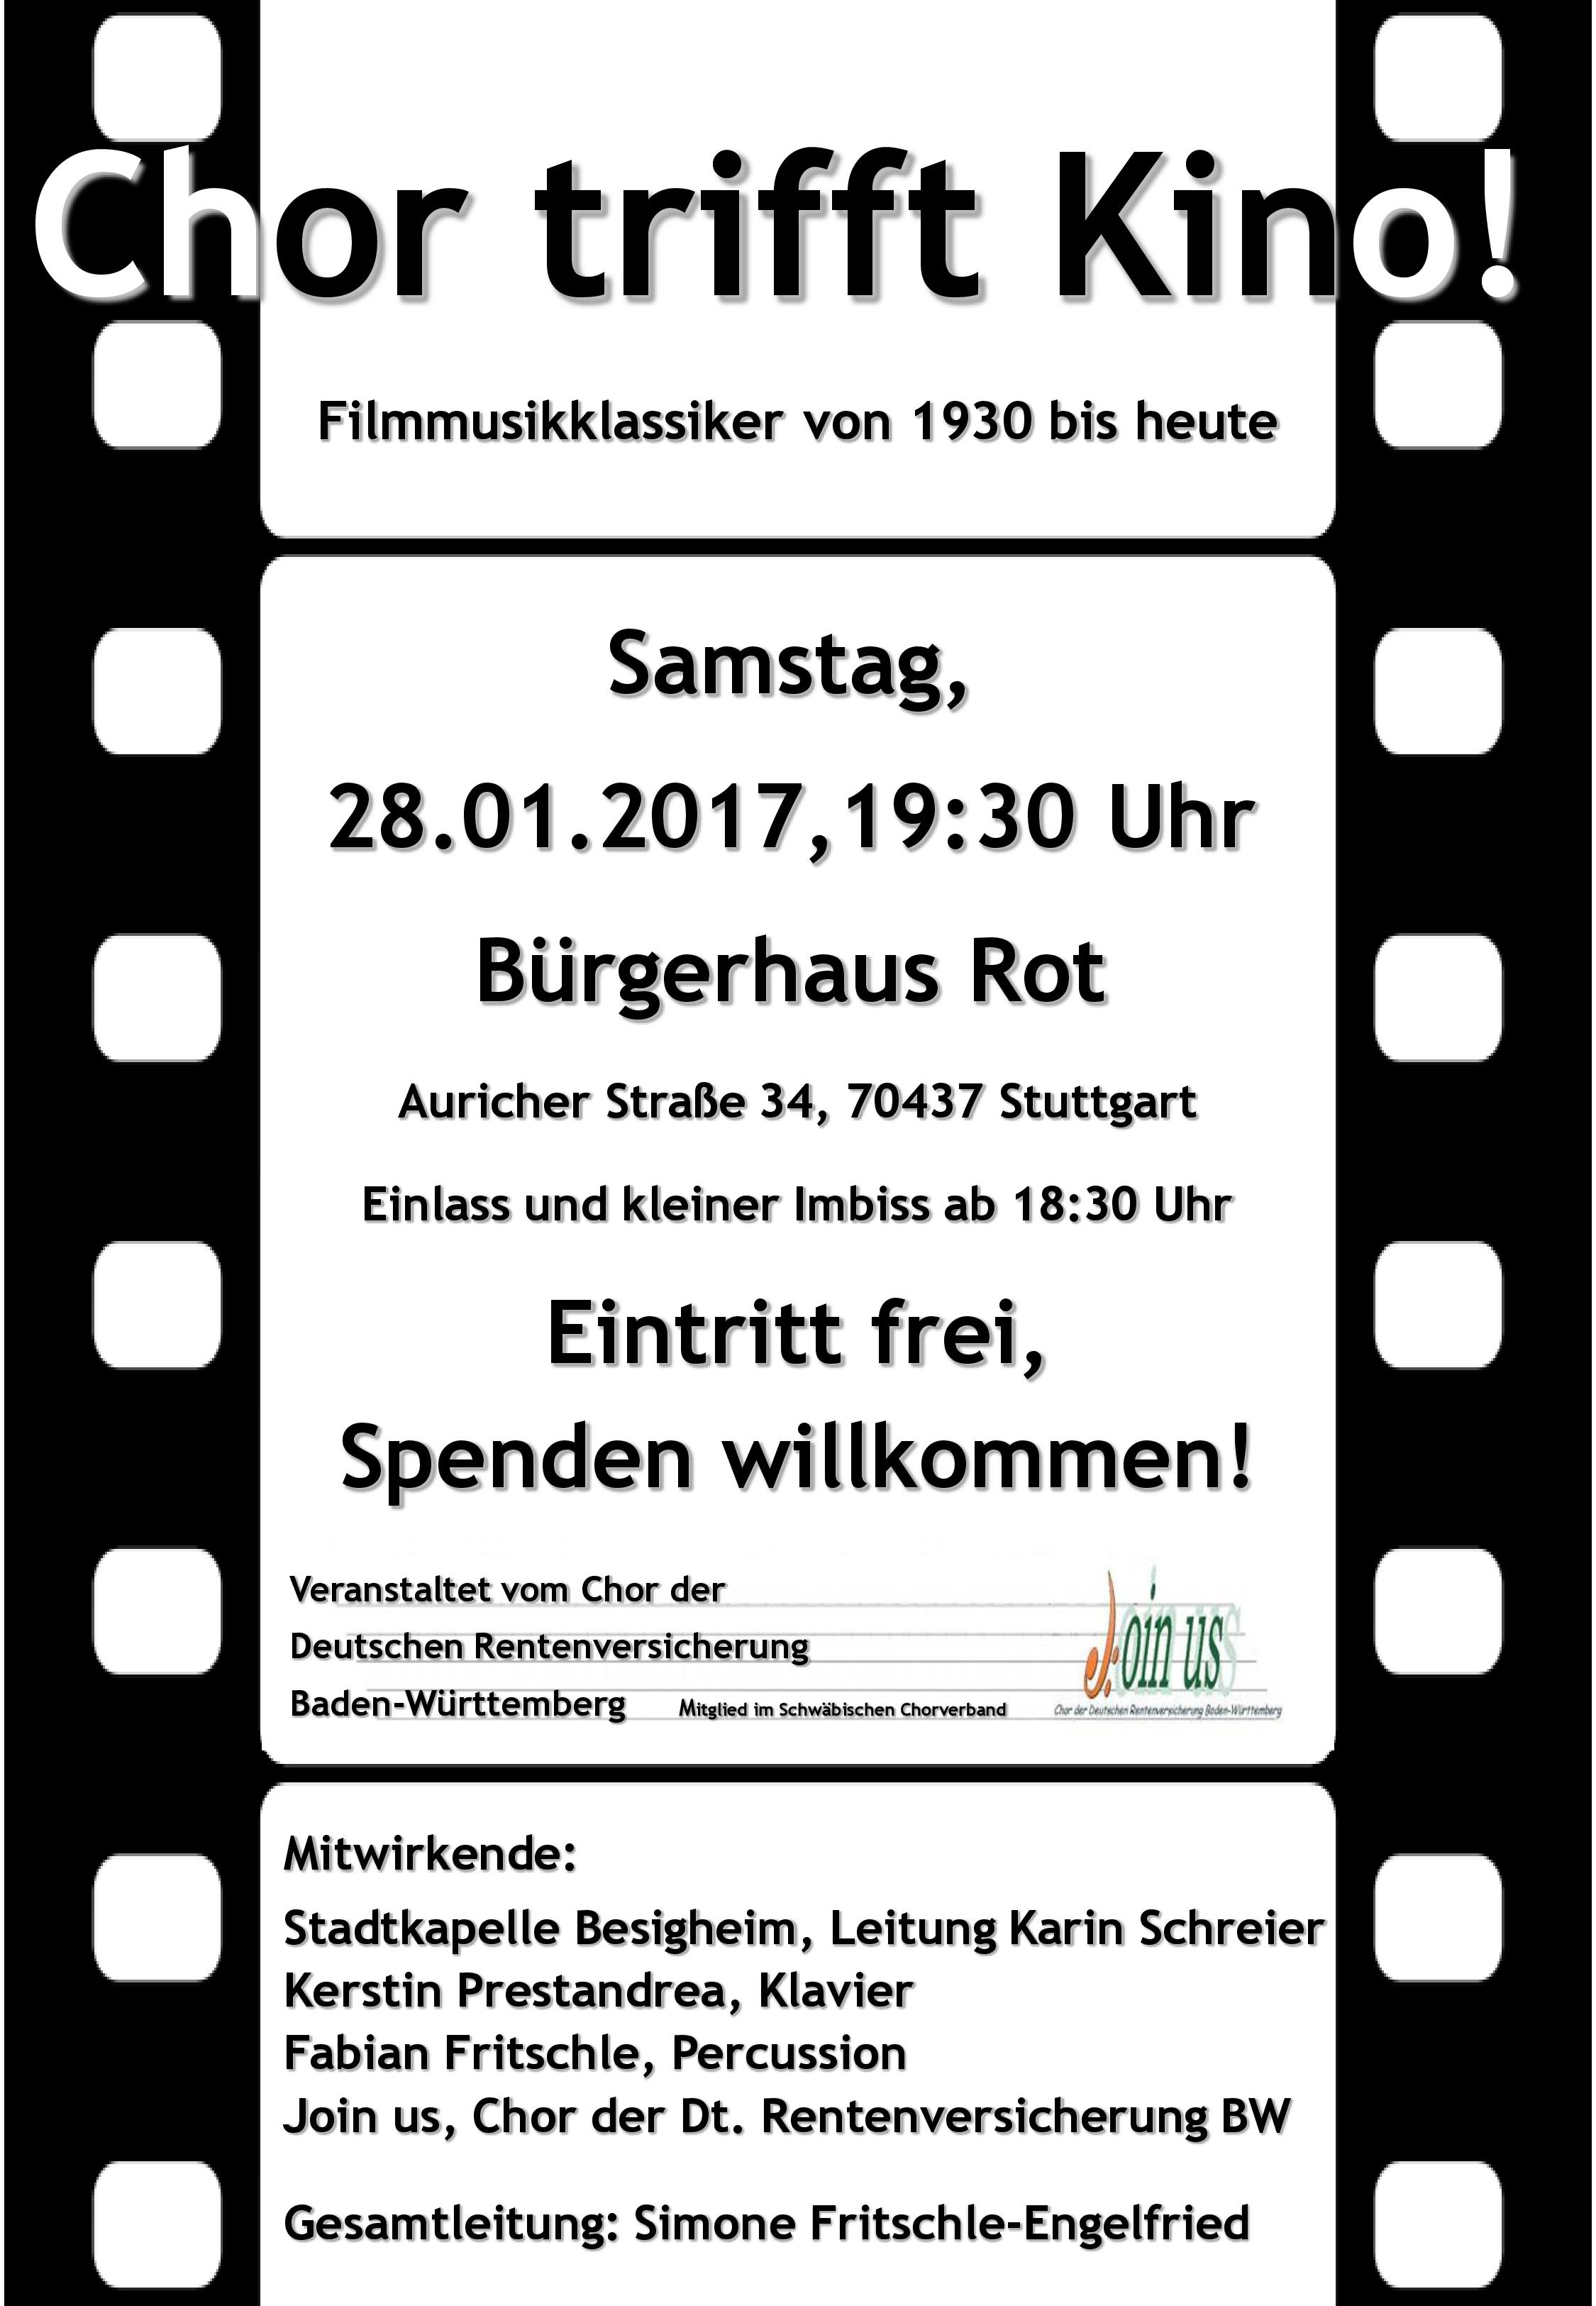 plakatentwurf_chor-trifft-kino-page-001